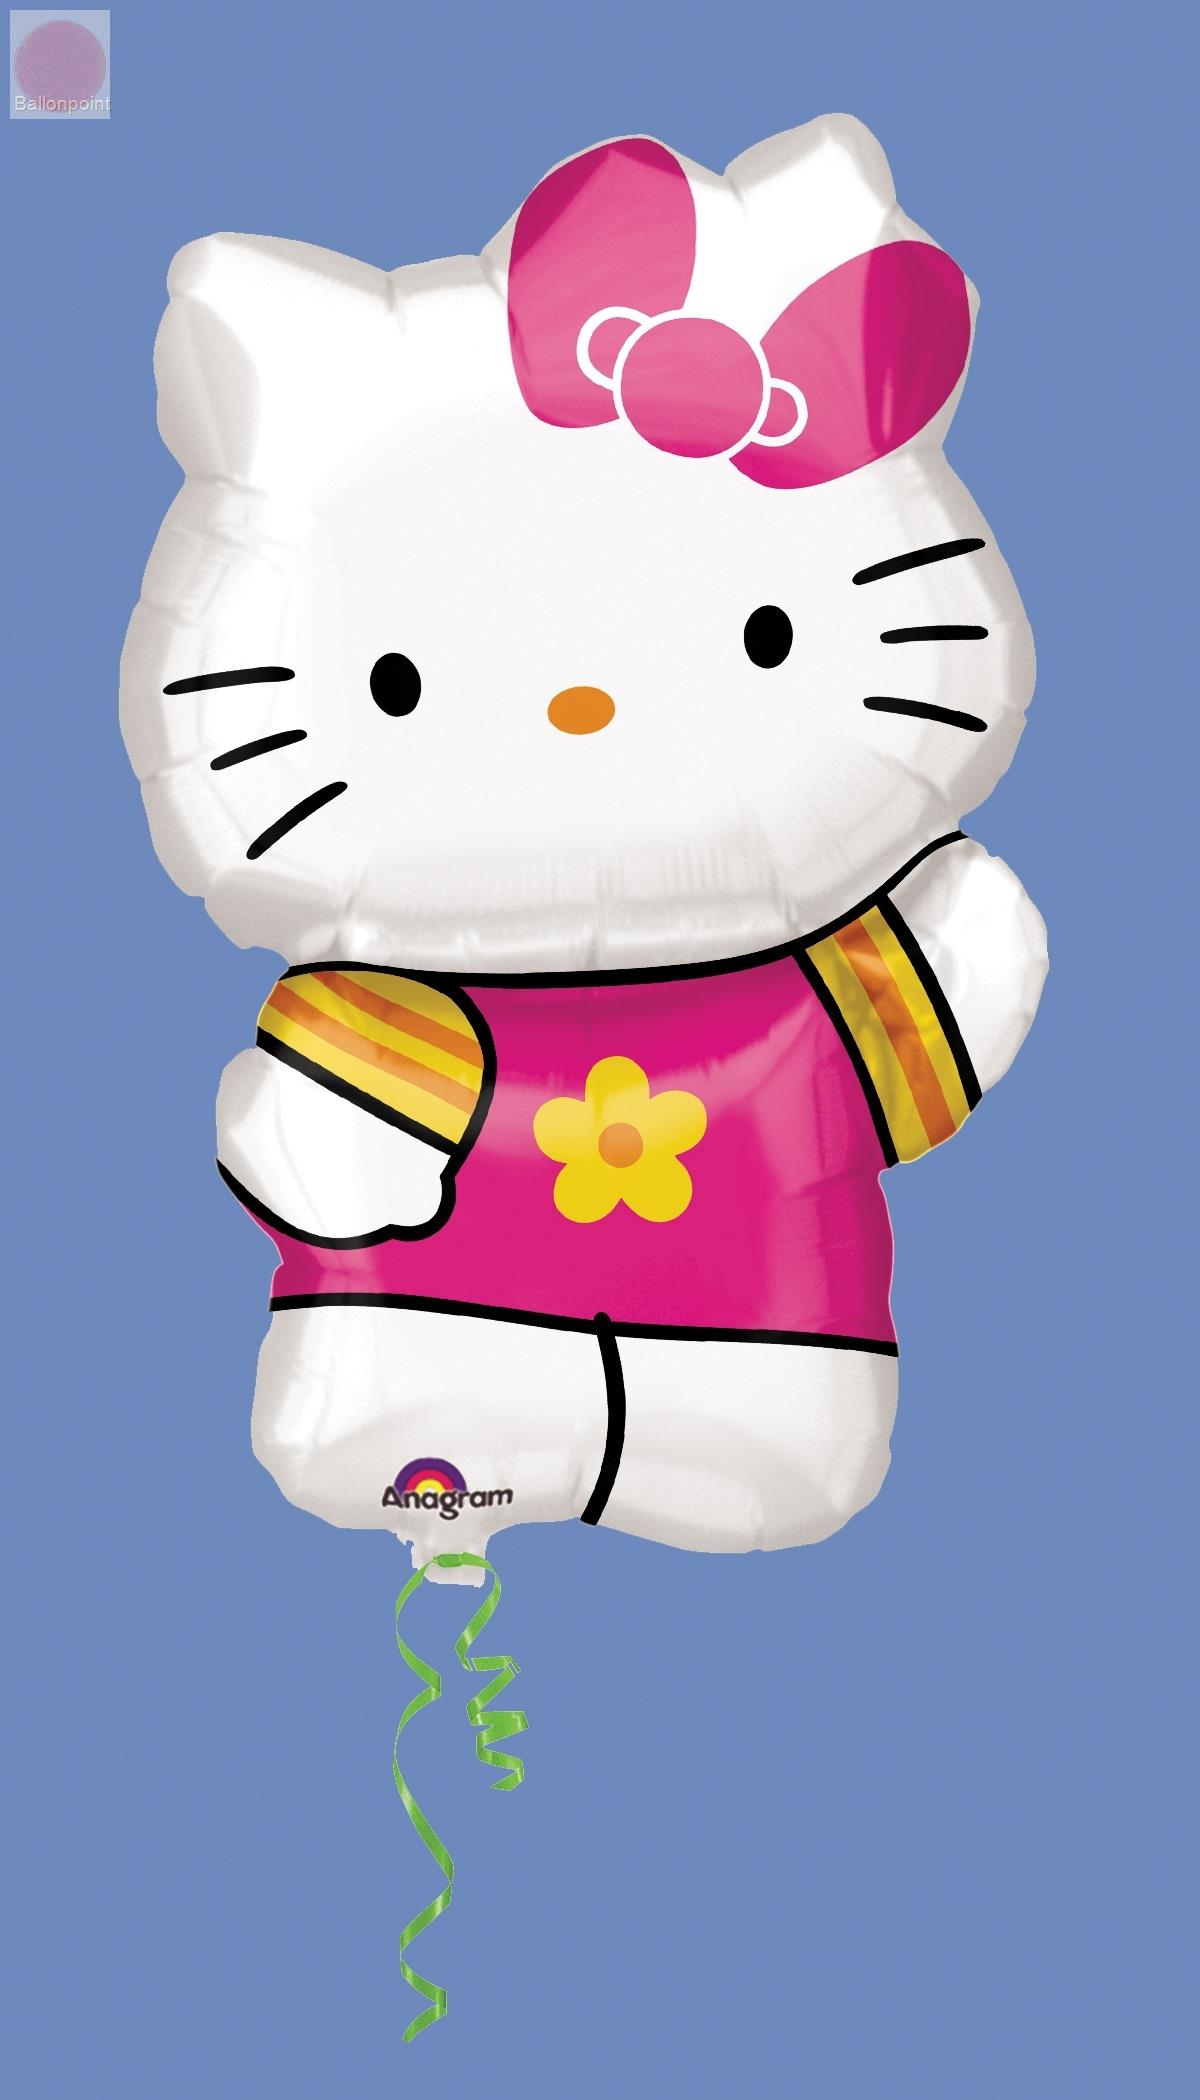 "FOBF063-0635601A Hello Kitty Summer Kitty 41 x 63cm(16x25"") Non metallic"